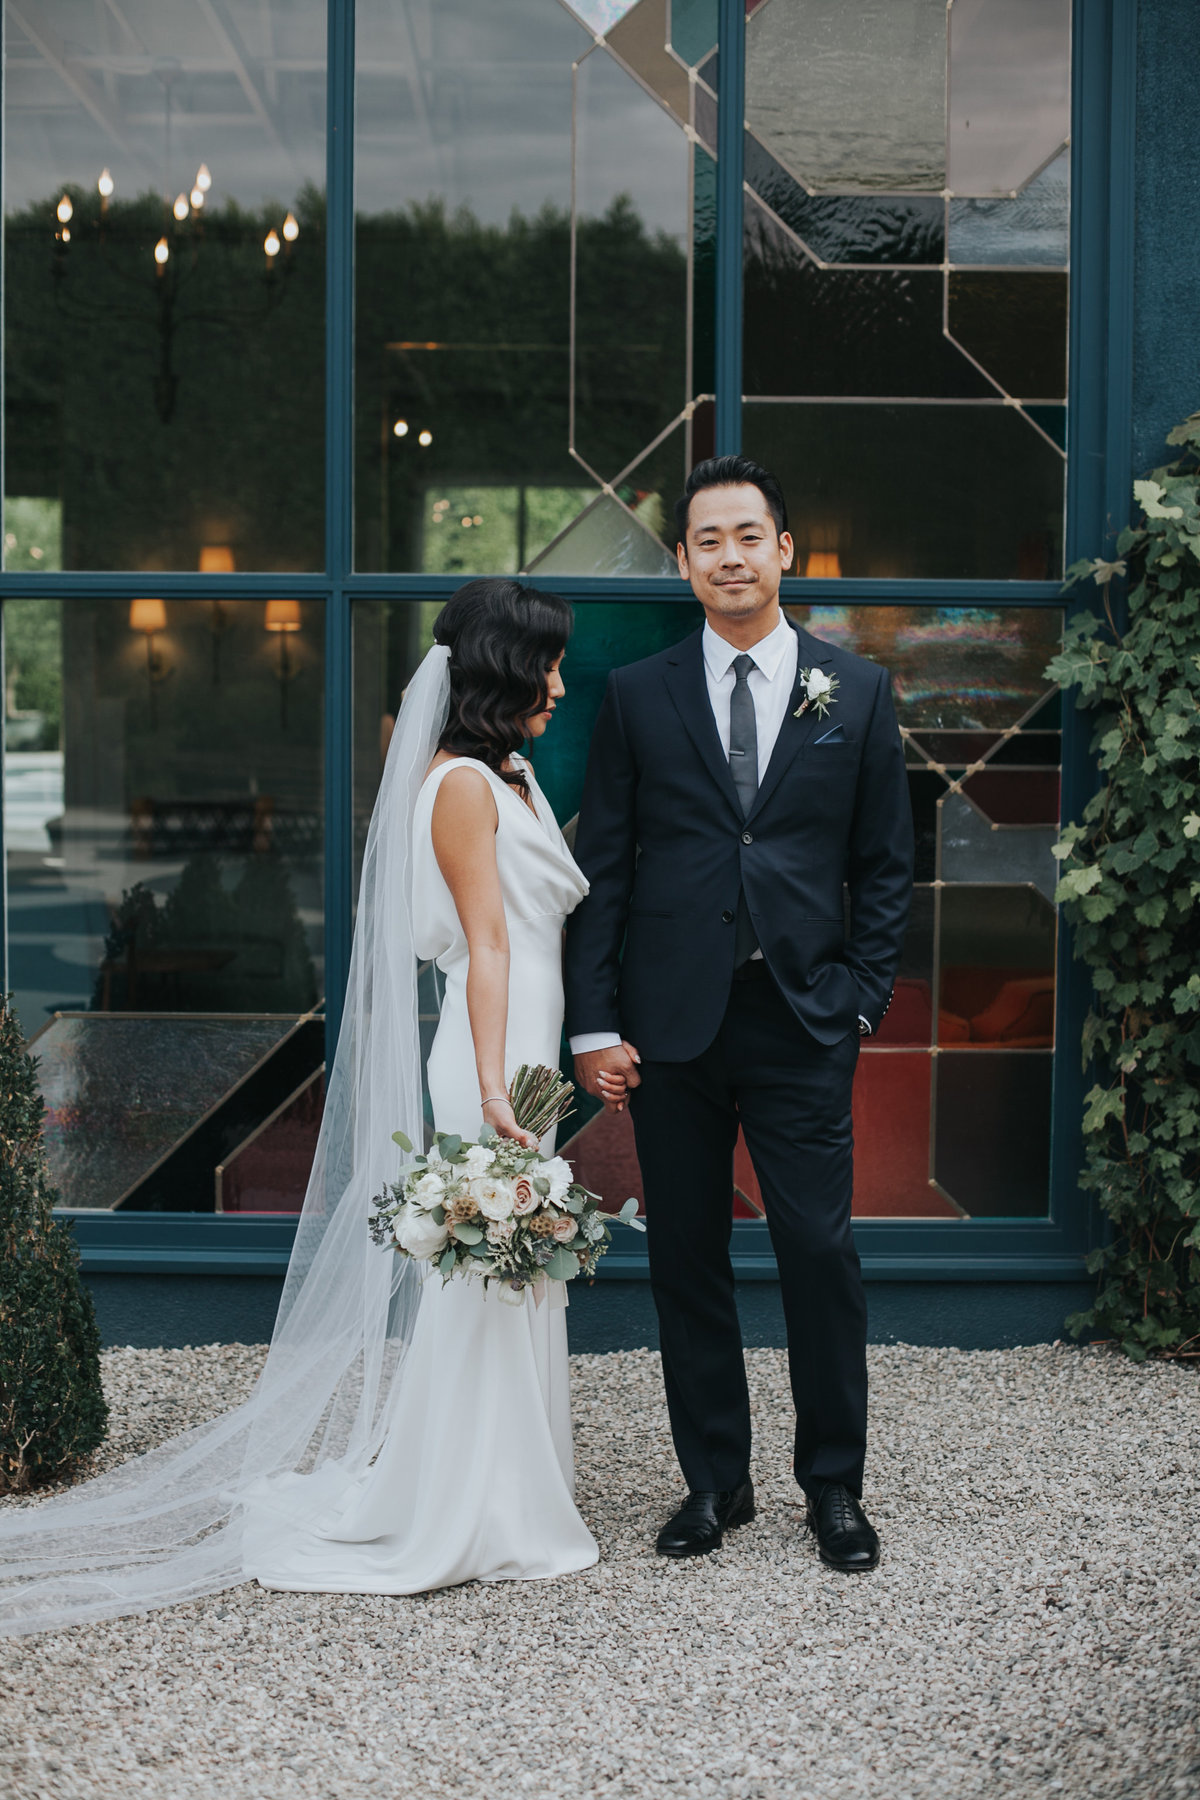 Modern bride and groom wedding portrait at The Fig House